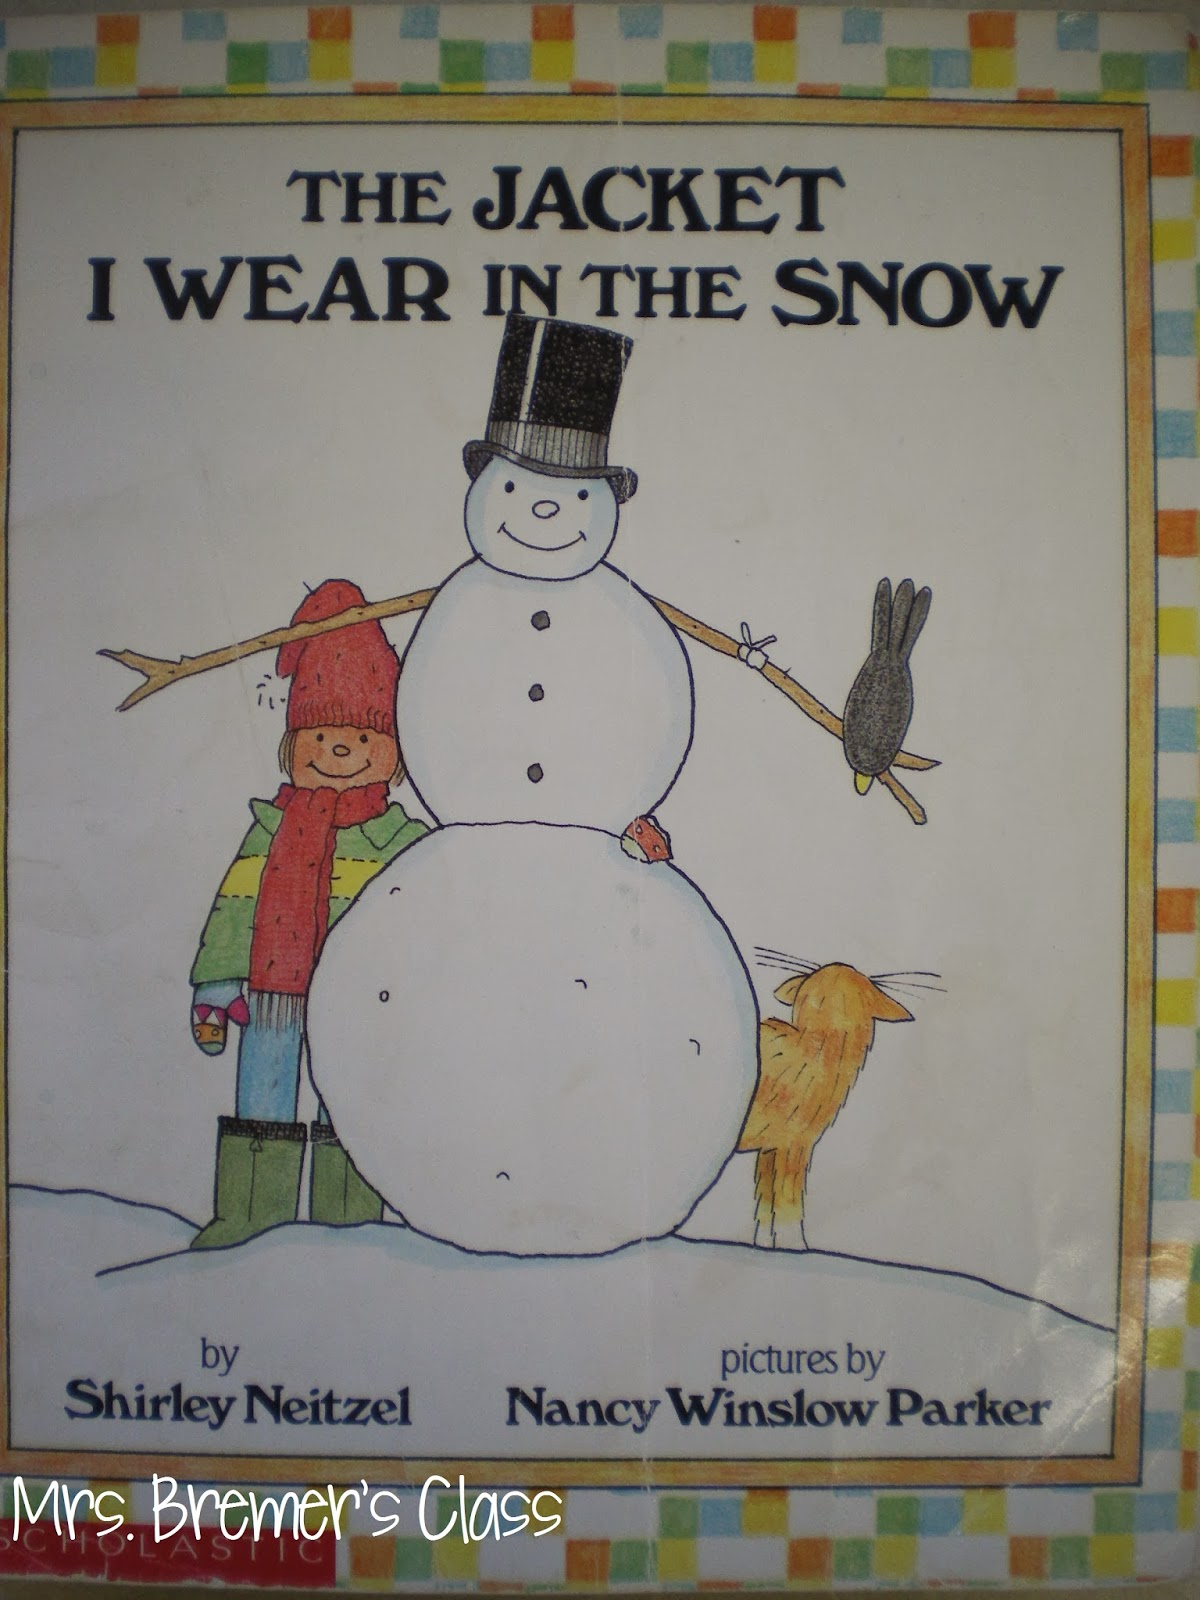 The Jacket I Wear in the Snow book study companion activities for Kindergarten and First Grade